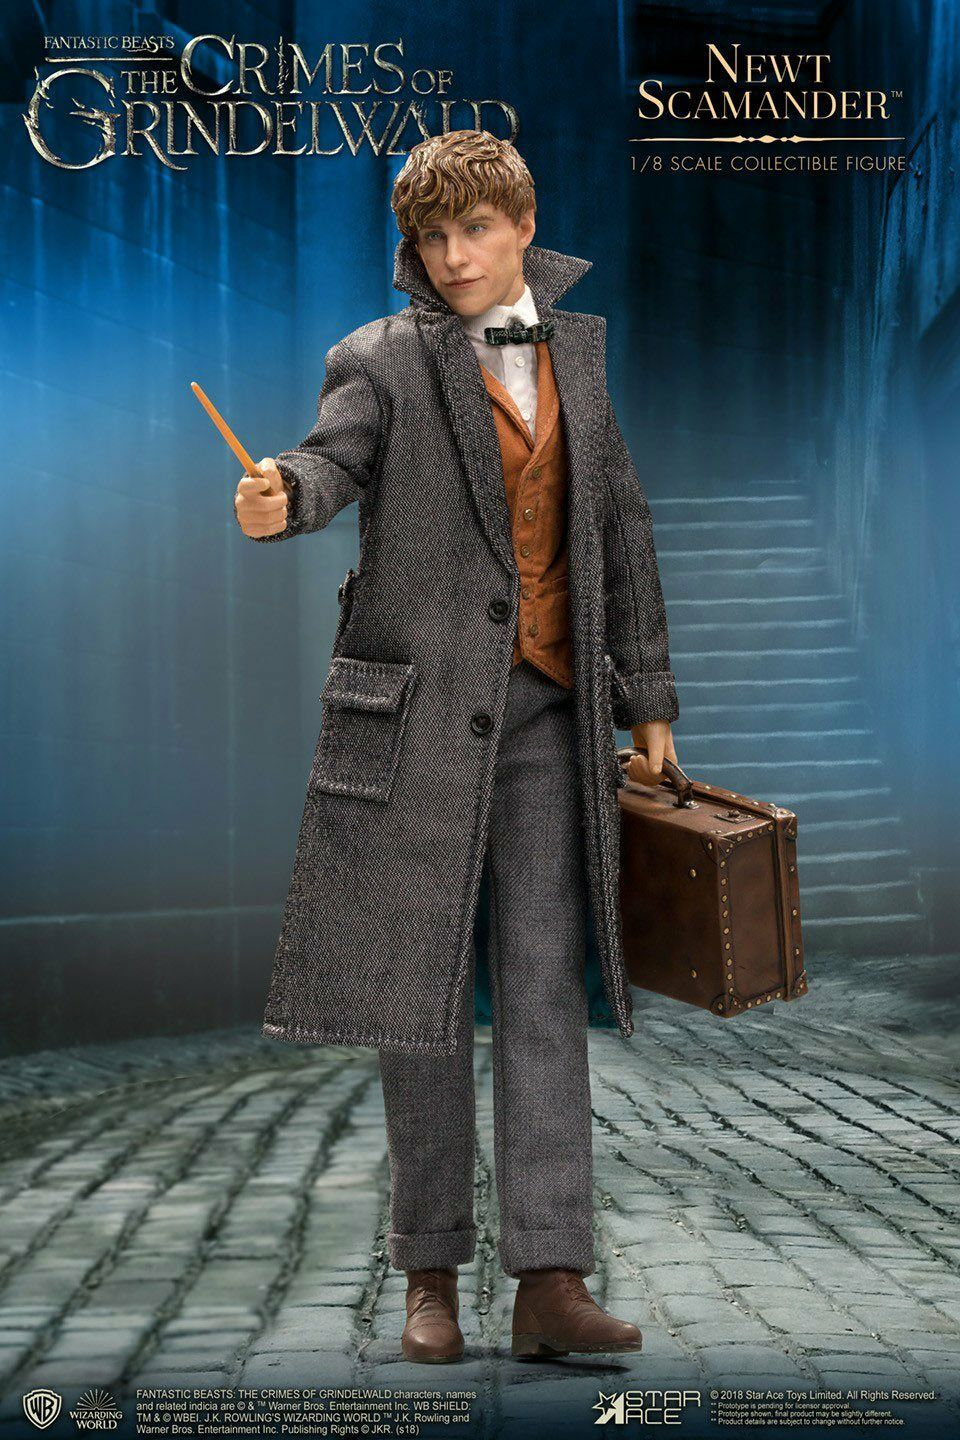 PREORDINE Fantastic Beasts 2 Real Master Series 1/8 Nuovot Scamander